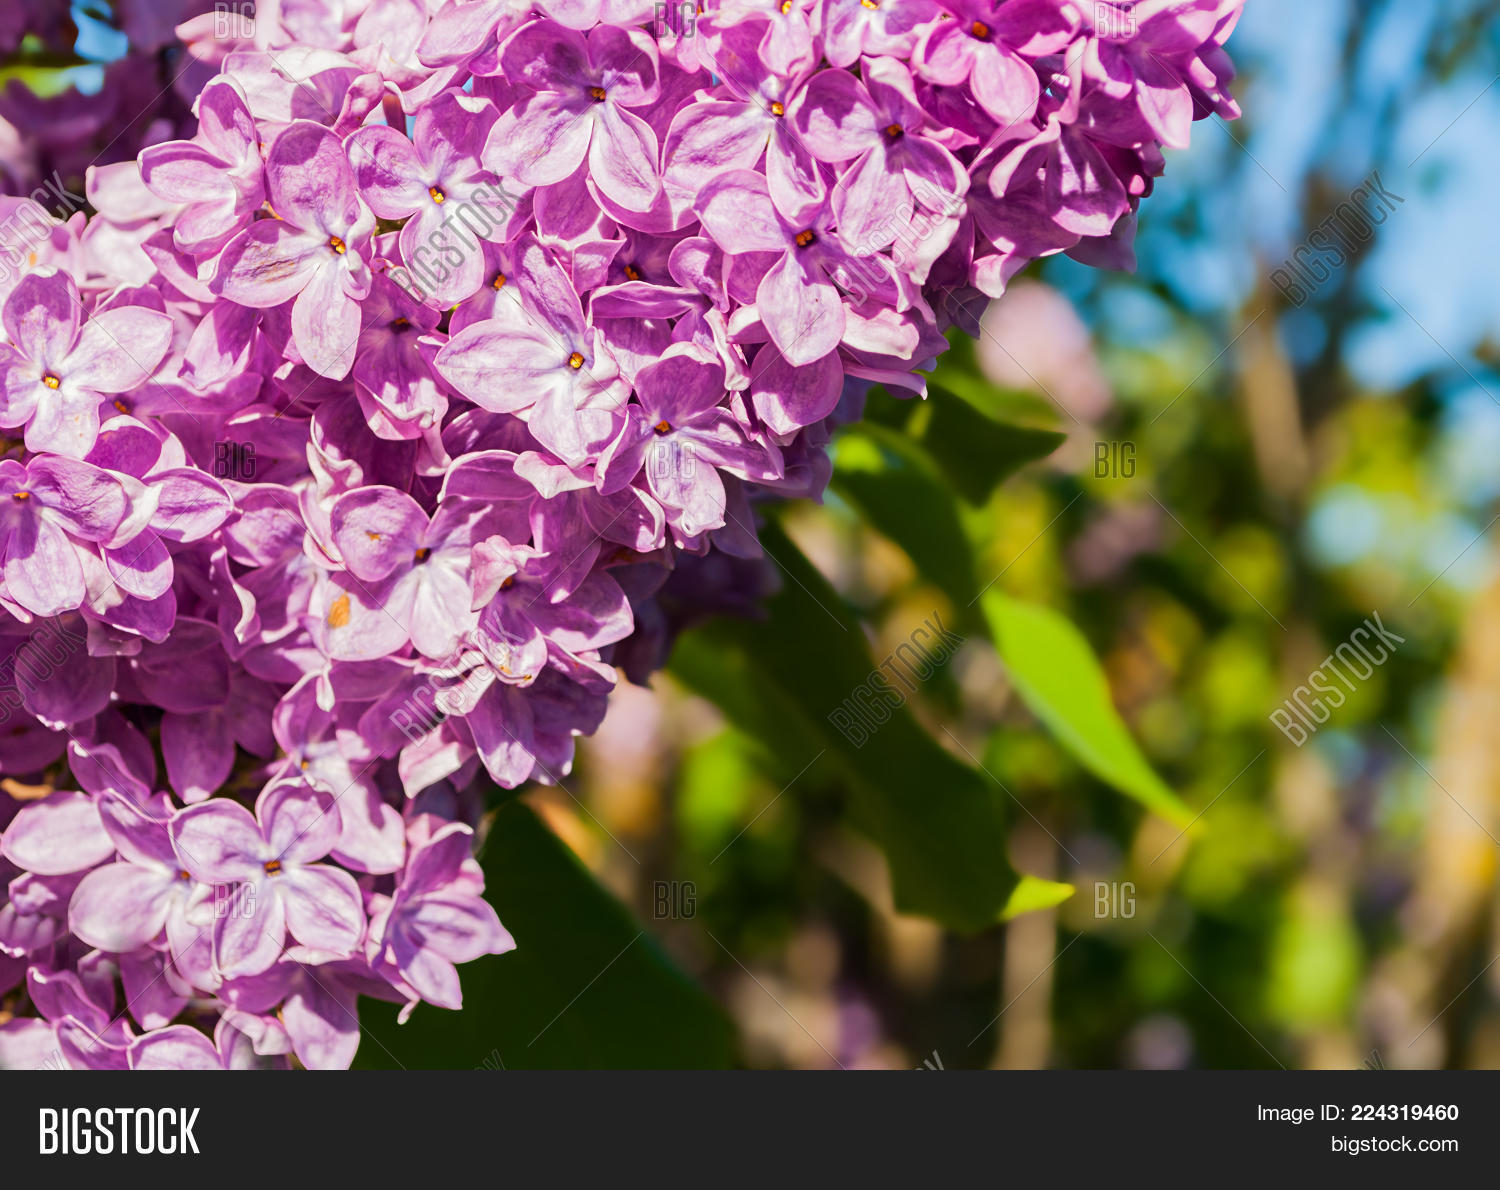 Spring Lilac Flowers Image Photo Free Trial Bigstock